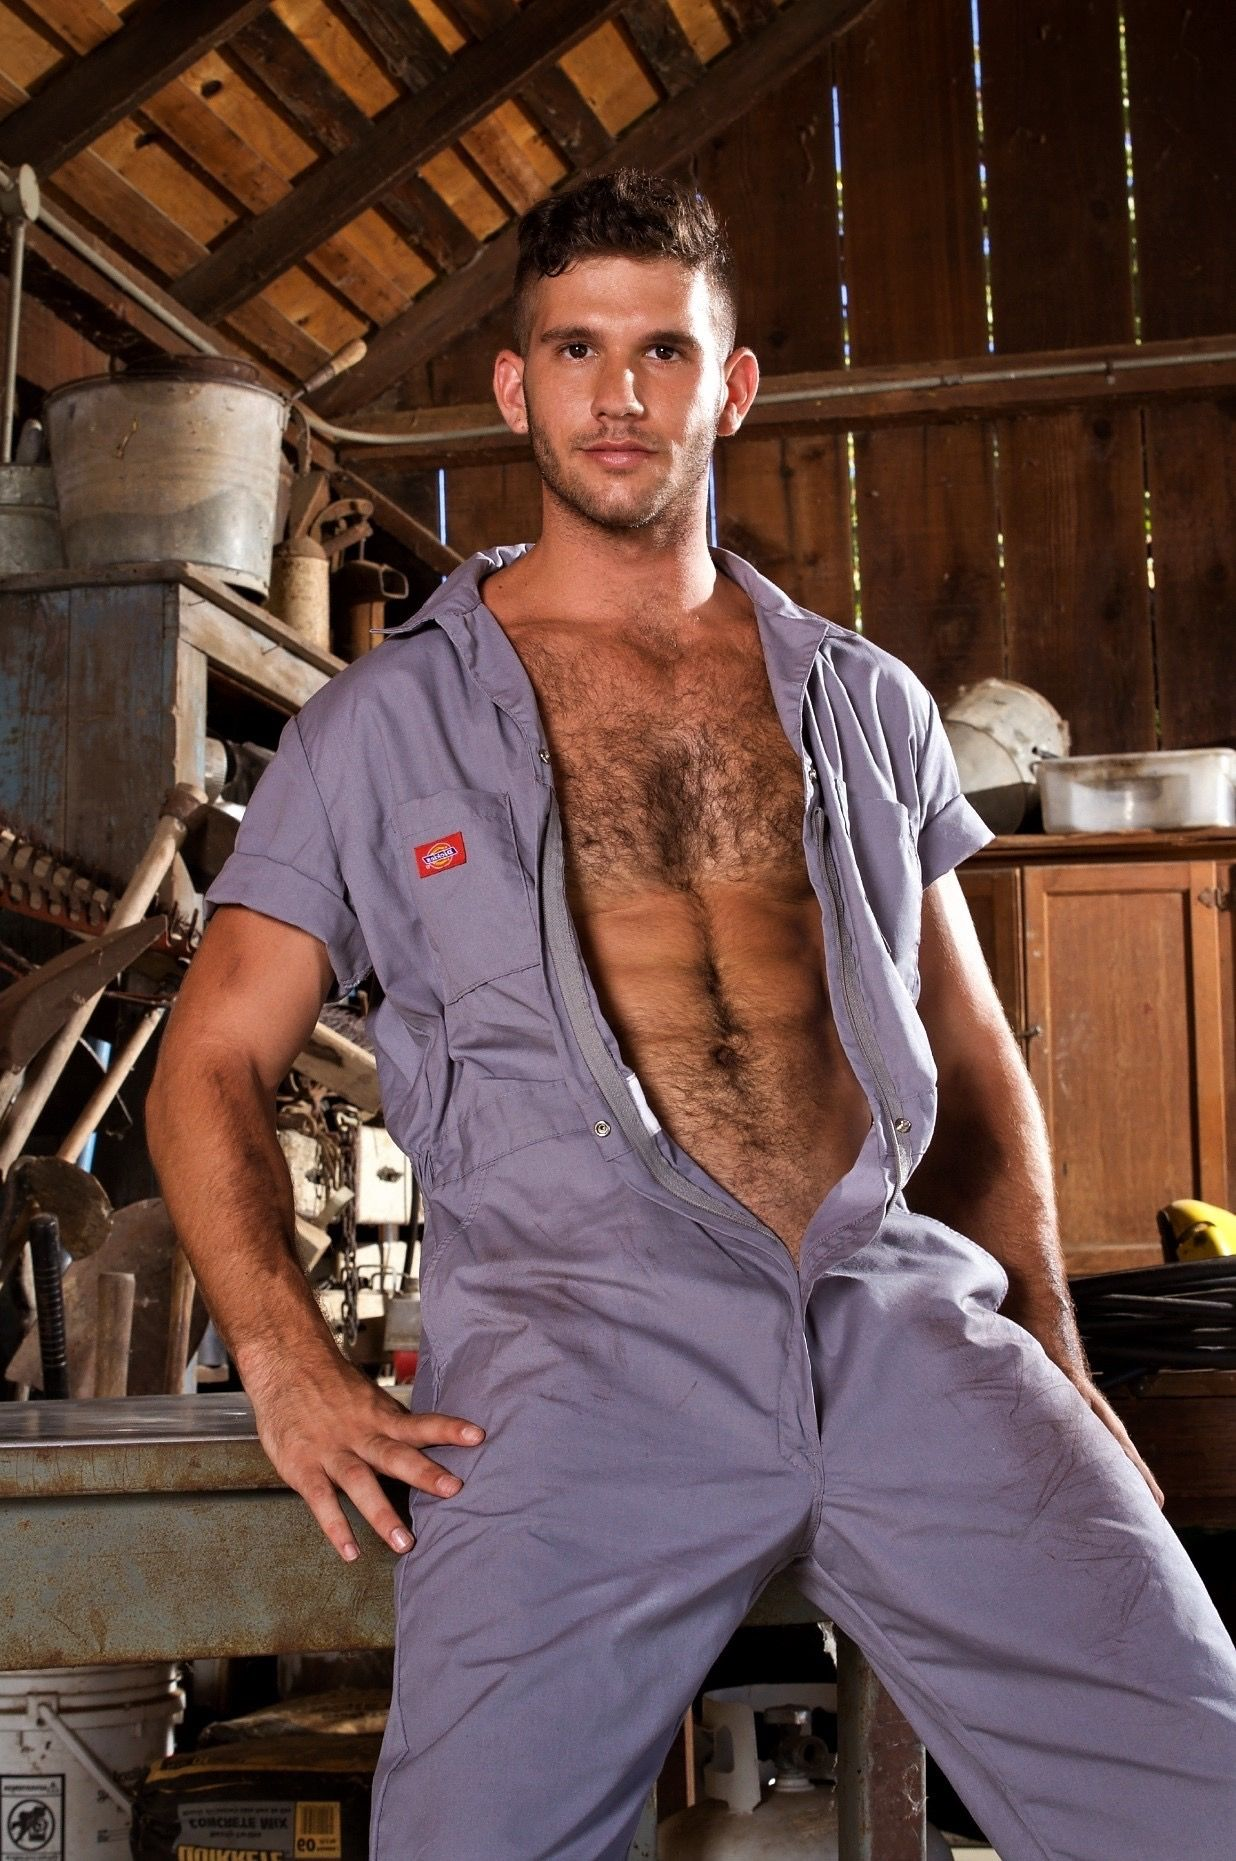 Hairy Coveralls